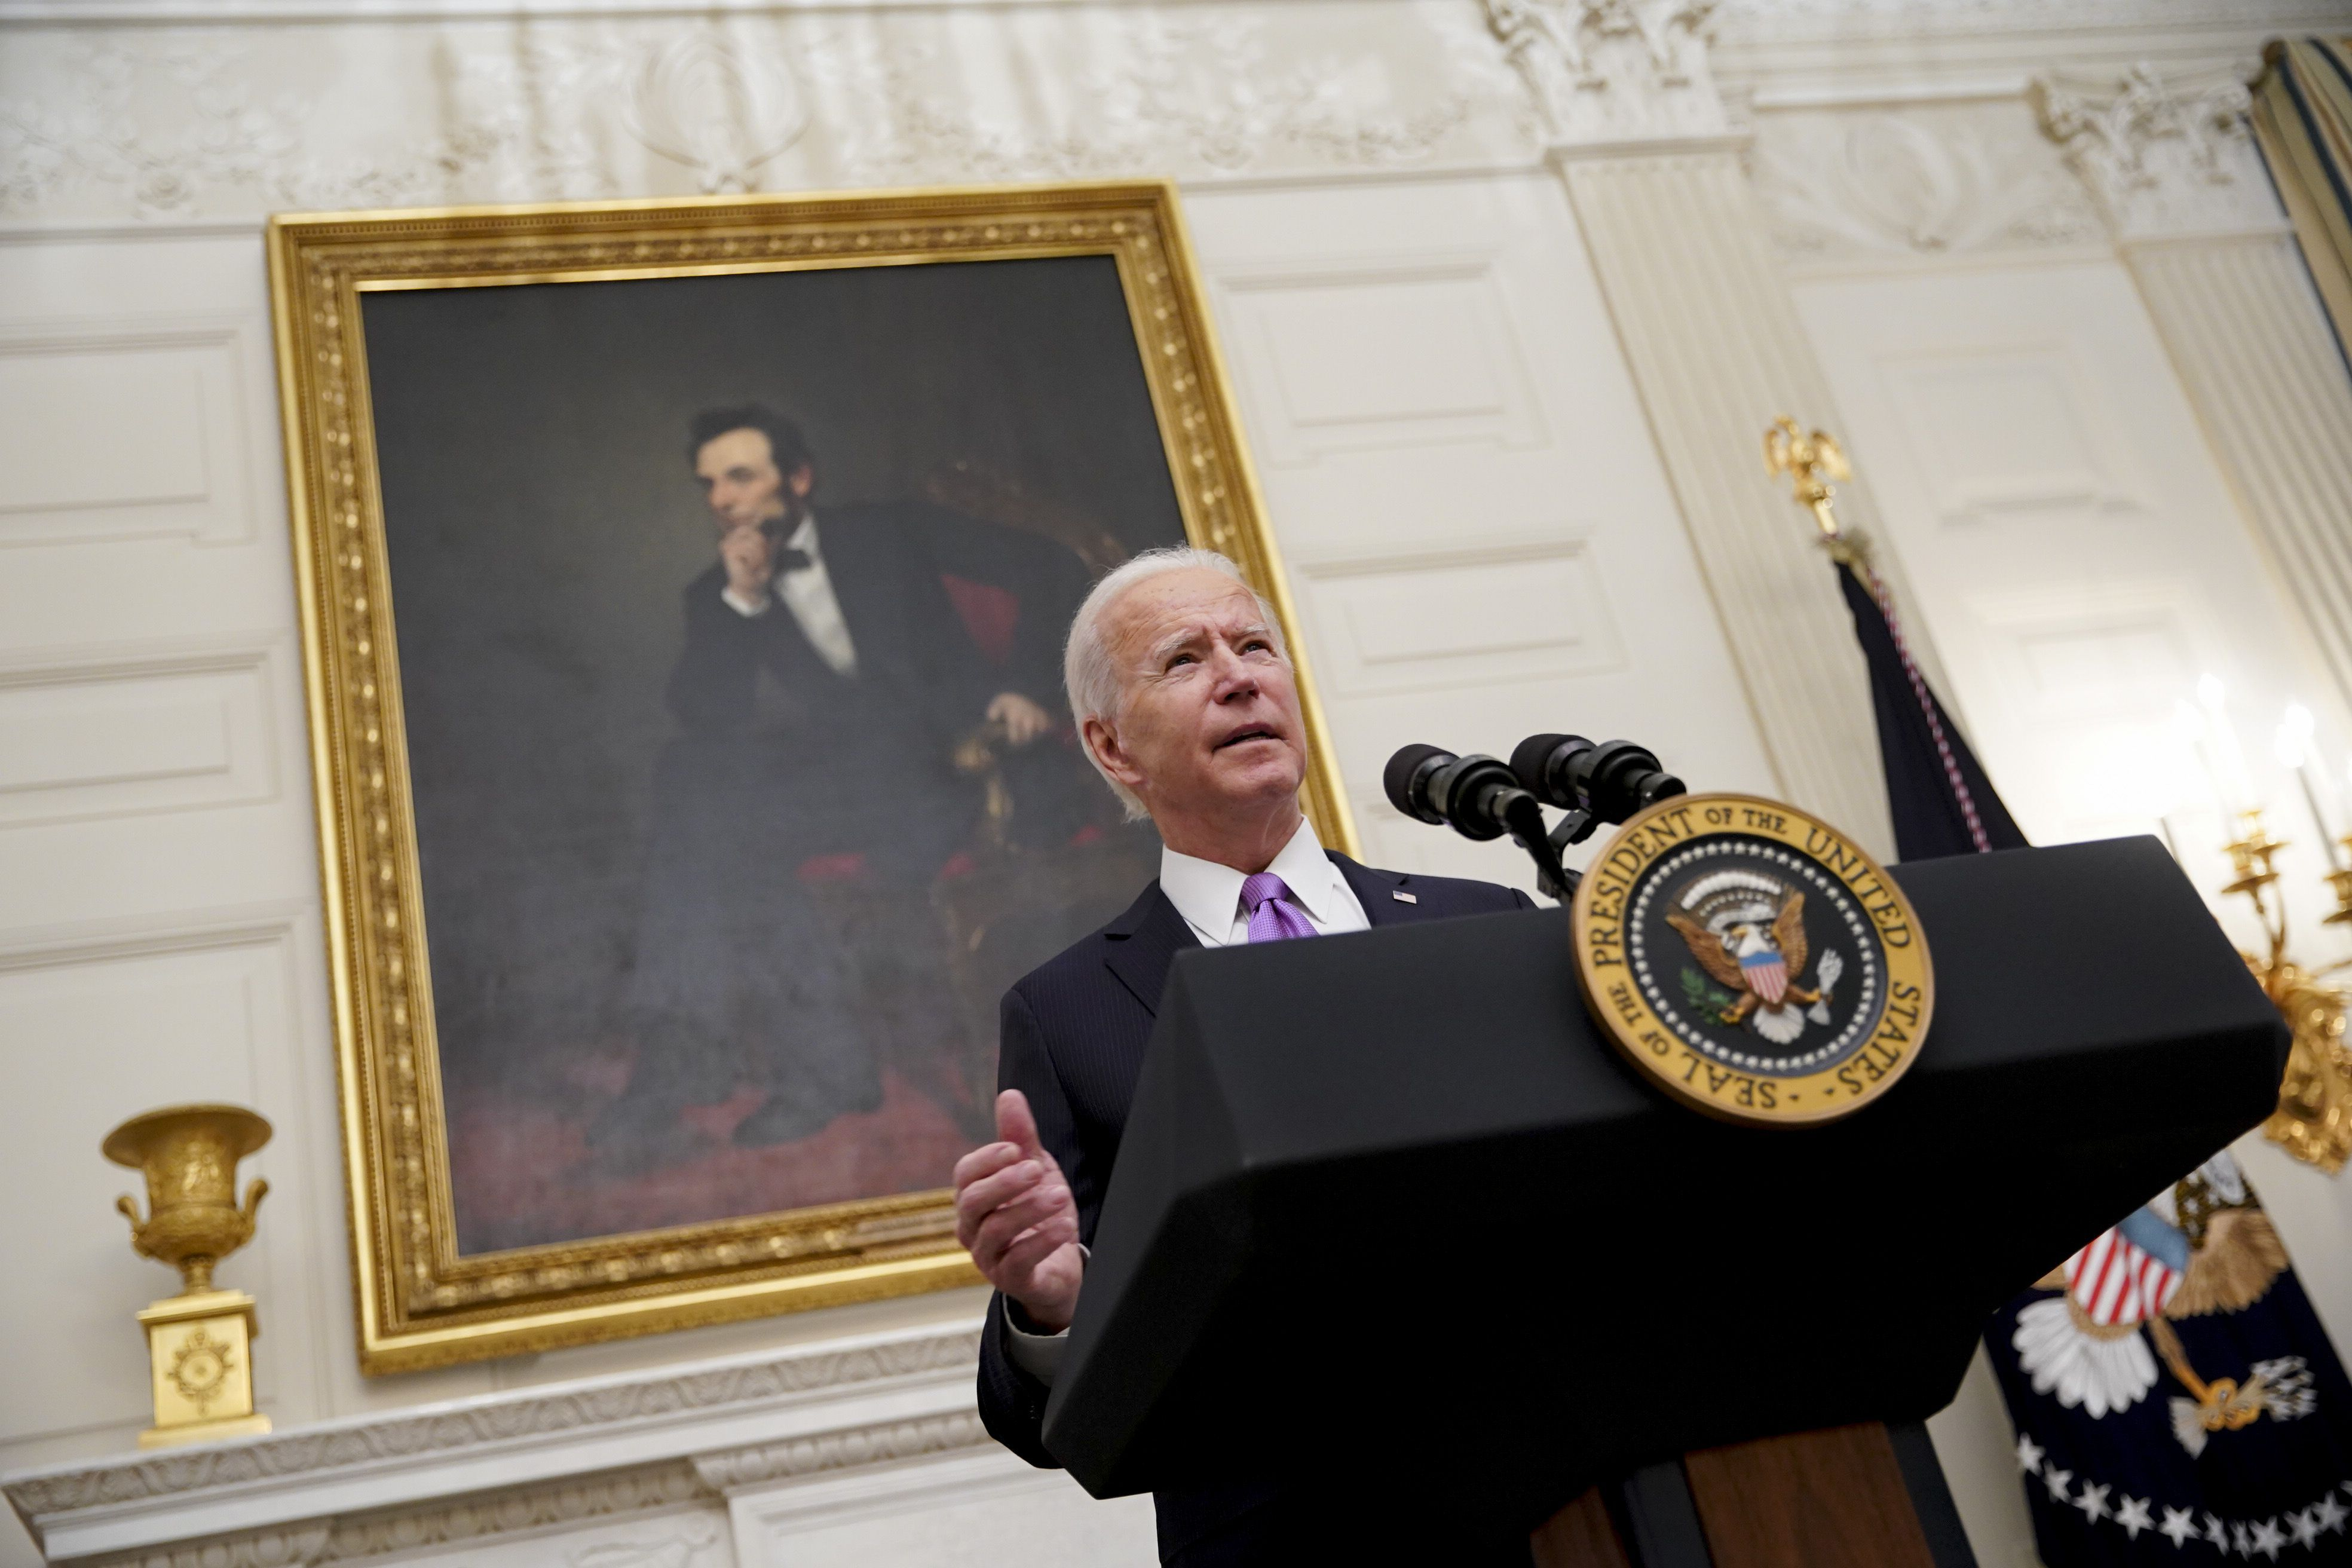 Joe Biden speaks during an event on his administration's Covid-19 response in the State Dining Room of the White House in Washington, D.C. on Jan. 21.